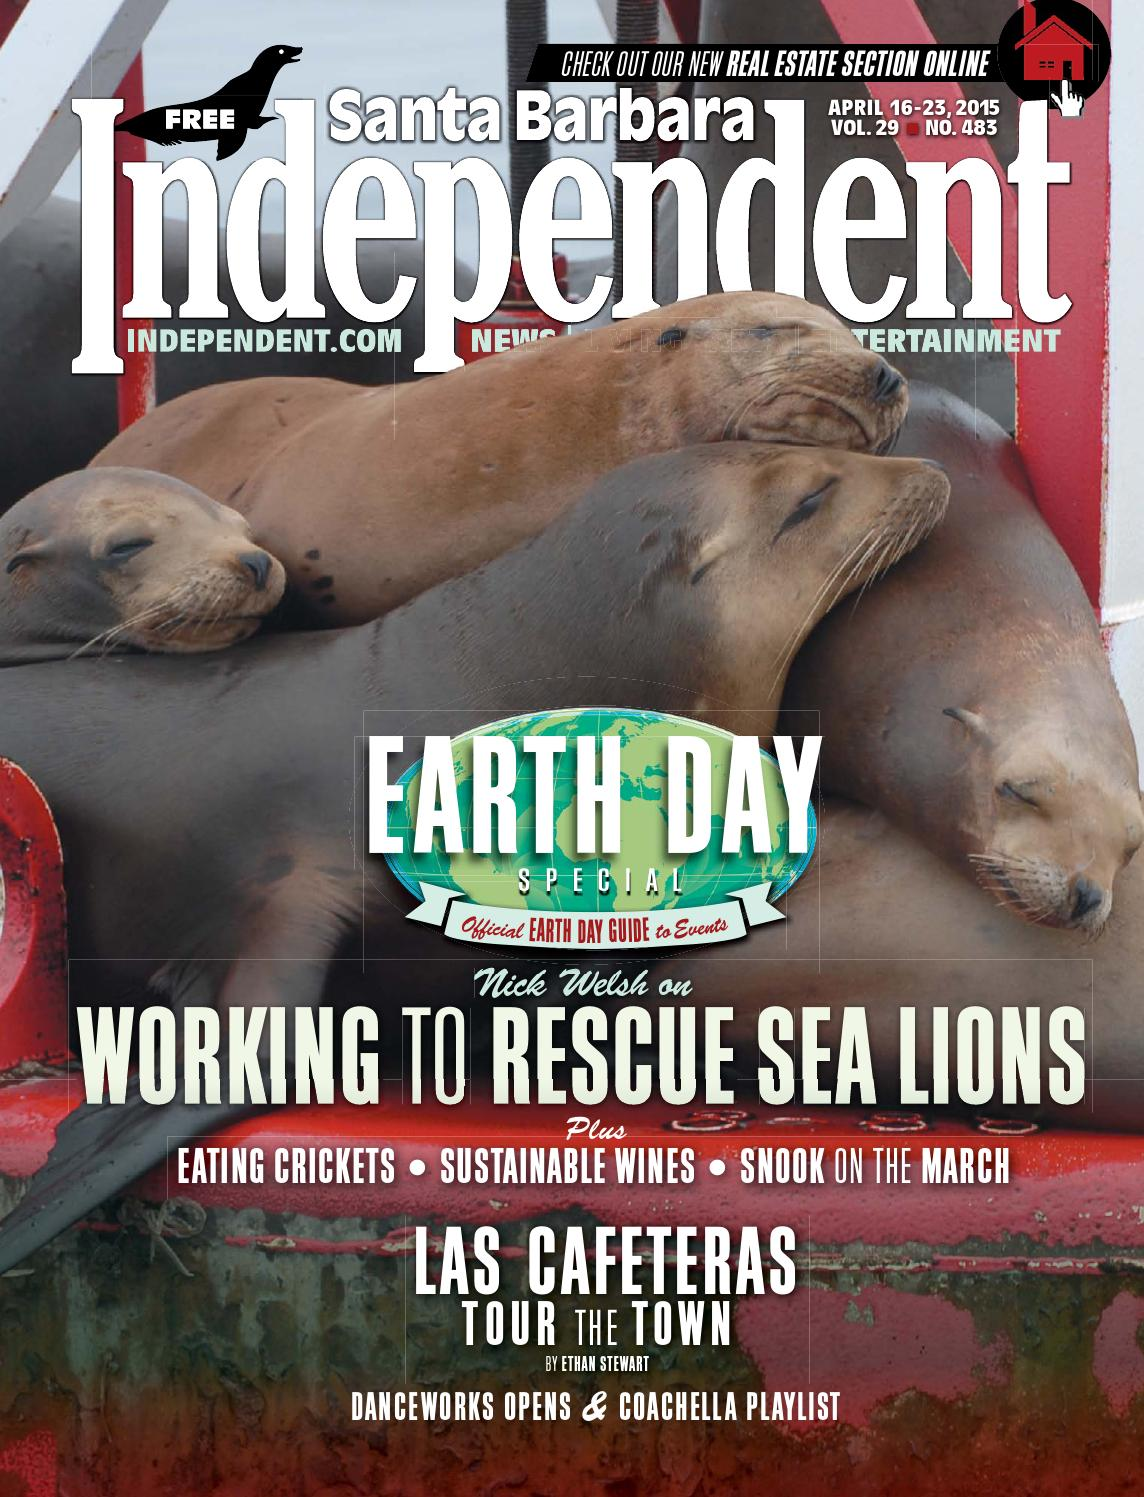 Santa Barbara Independent, 04/16/15 by SB Independent - issuu